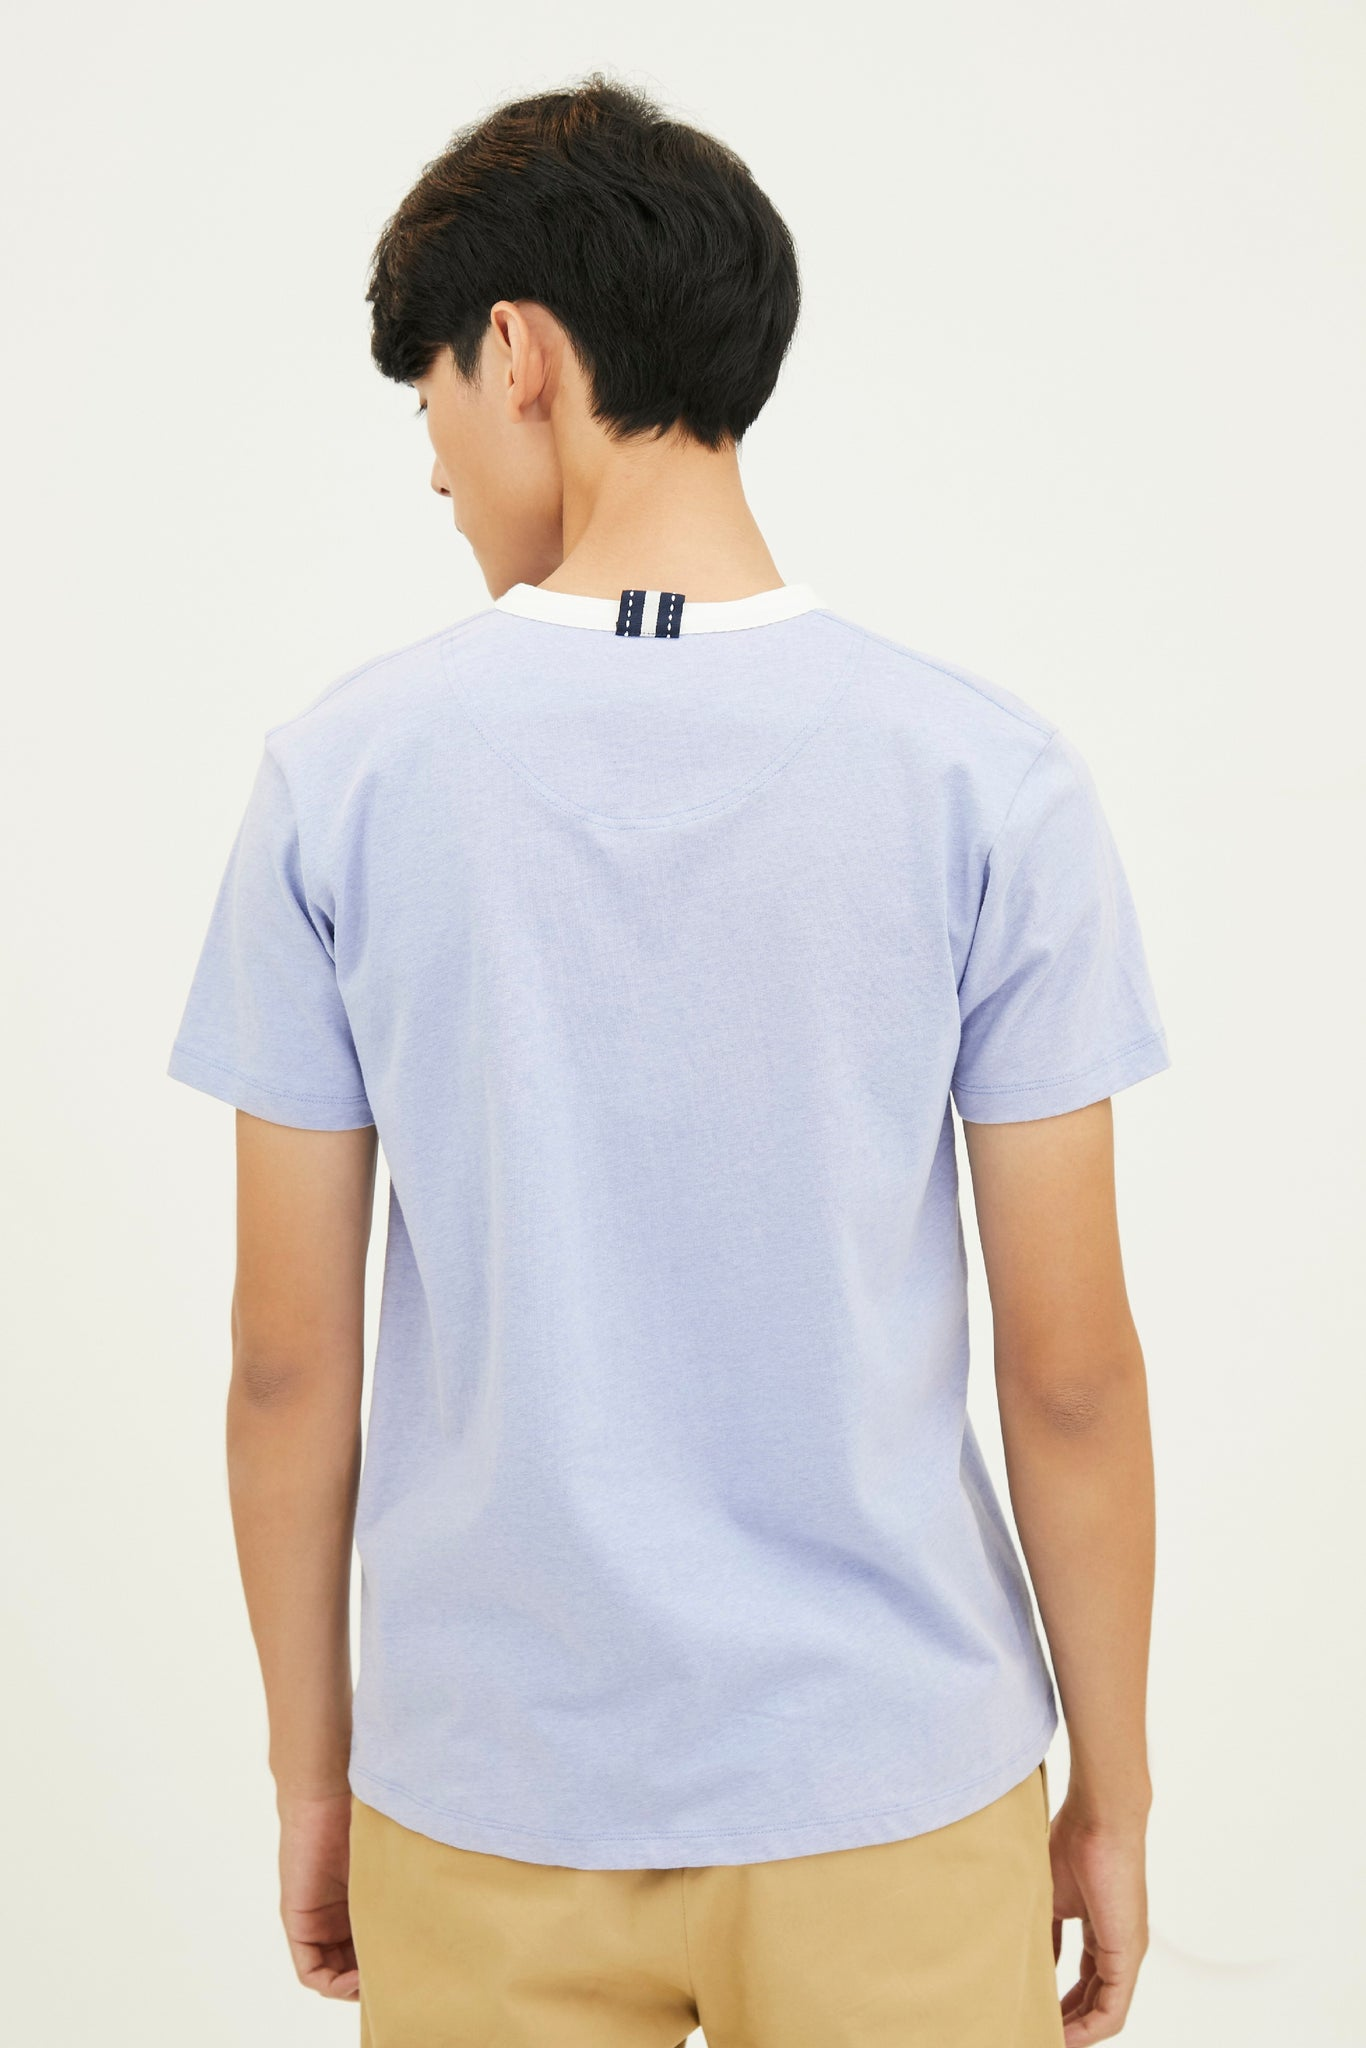 Load image into Gallery viewer, TOP DYED COTTON JERSEY HENLEY T-SHRIT  WITH LOGO EMBROIDED (S20MD03032NB1A)